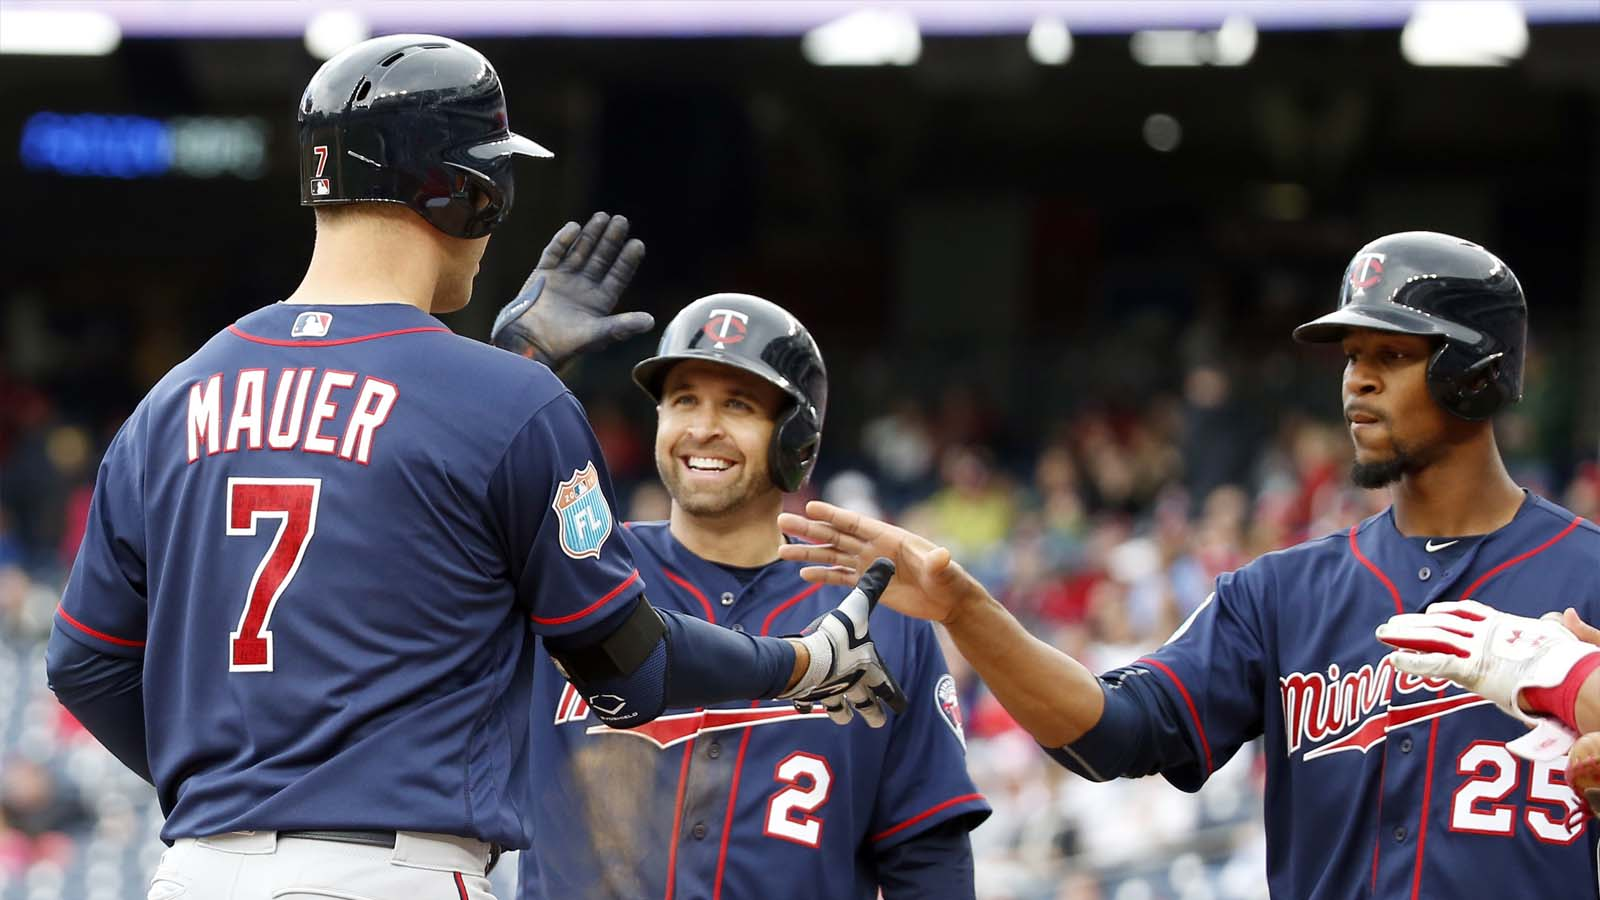 Confidence is high as Twins start 2016 season